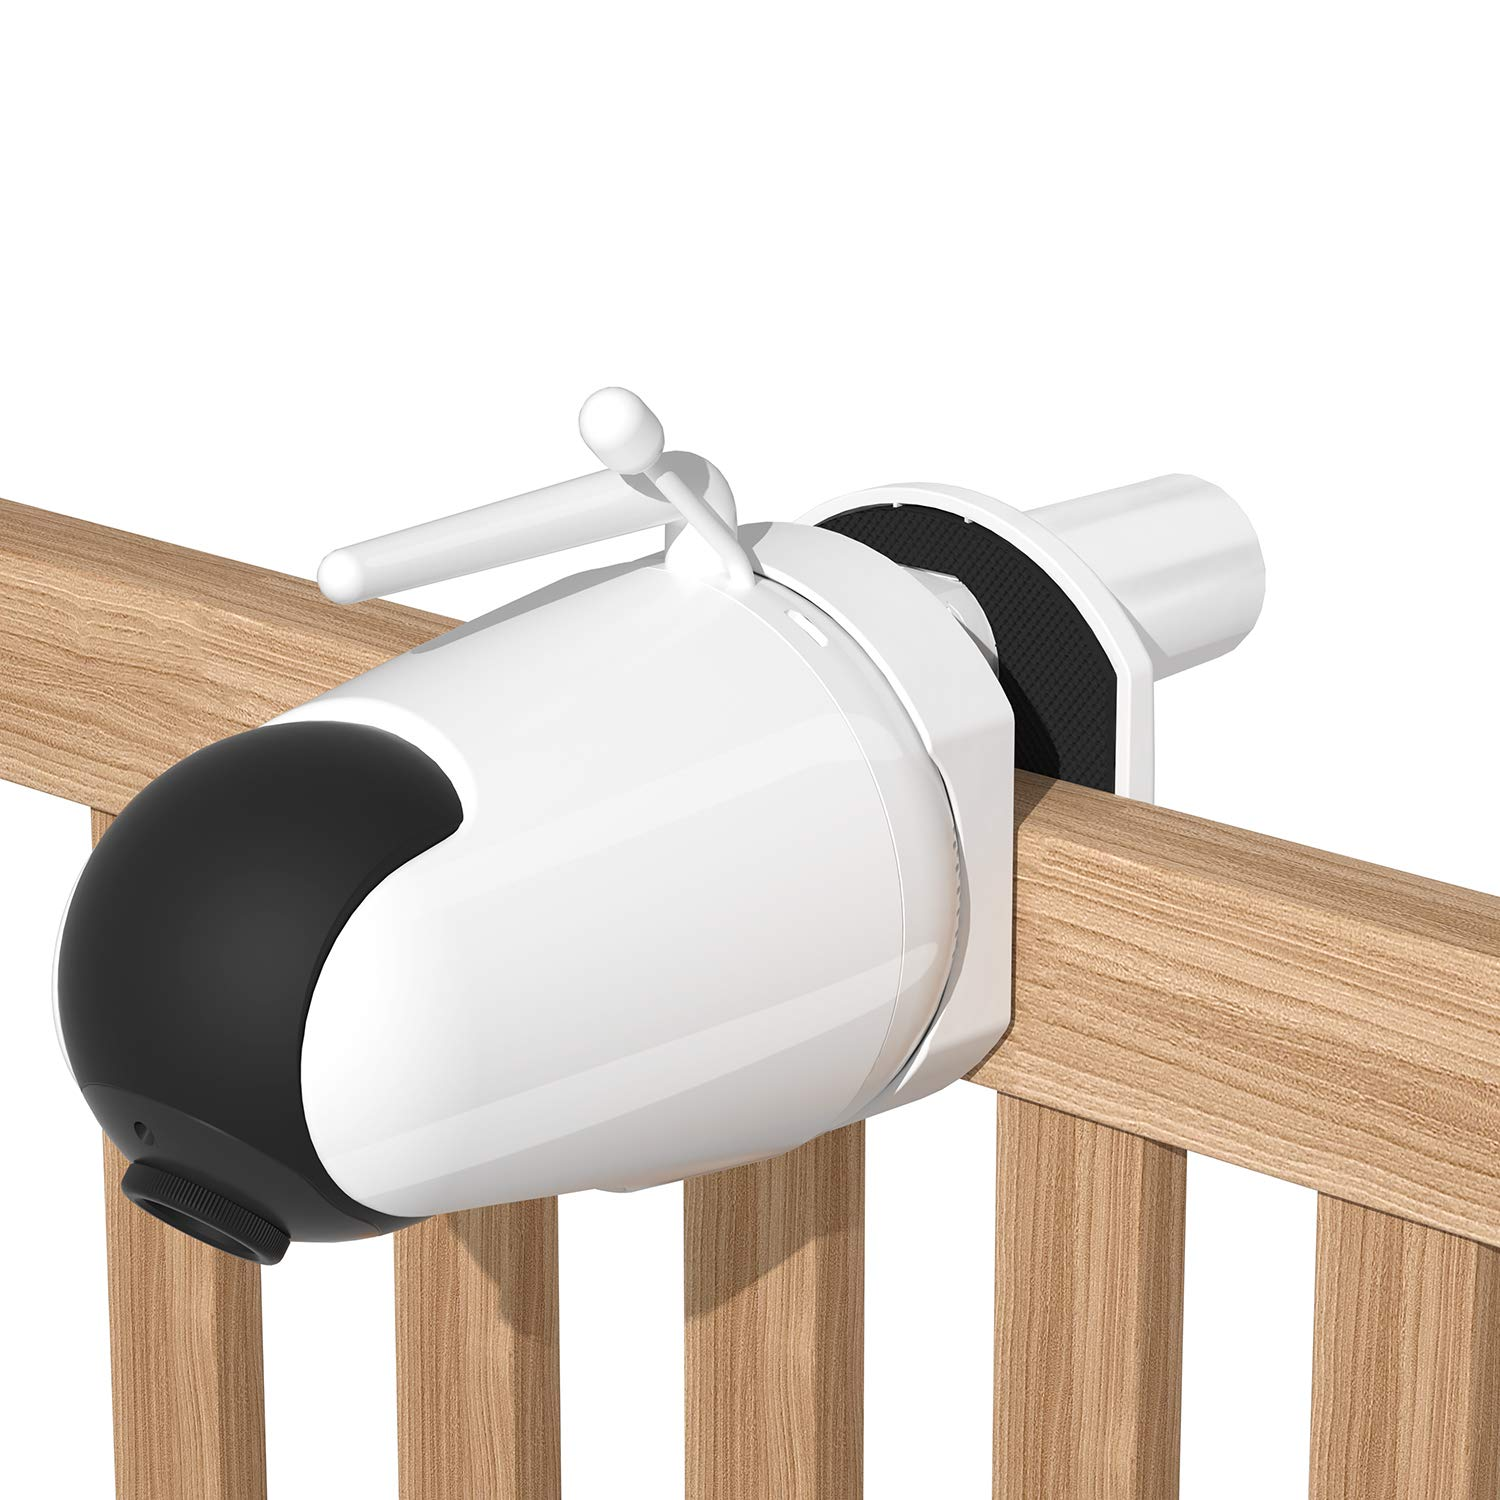 Aobelieve Crib Mount for VAVA Baby Monitor